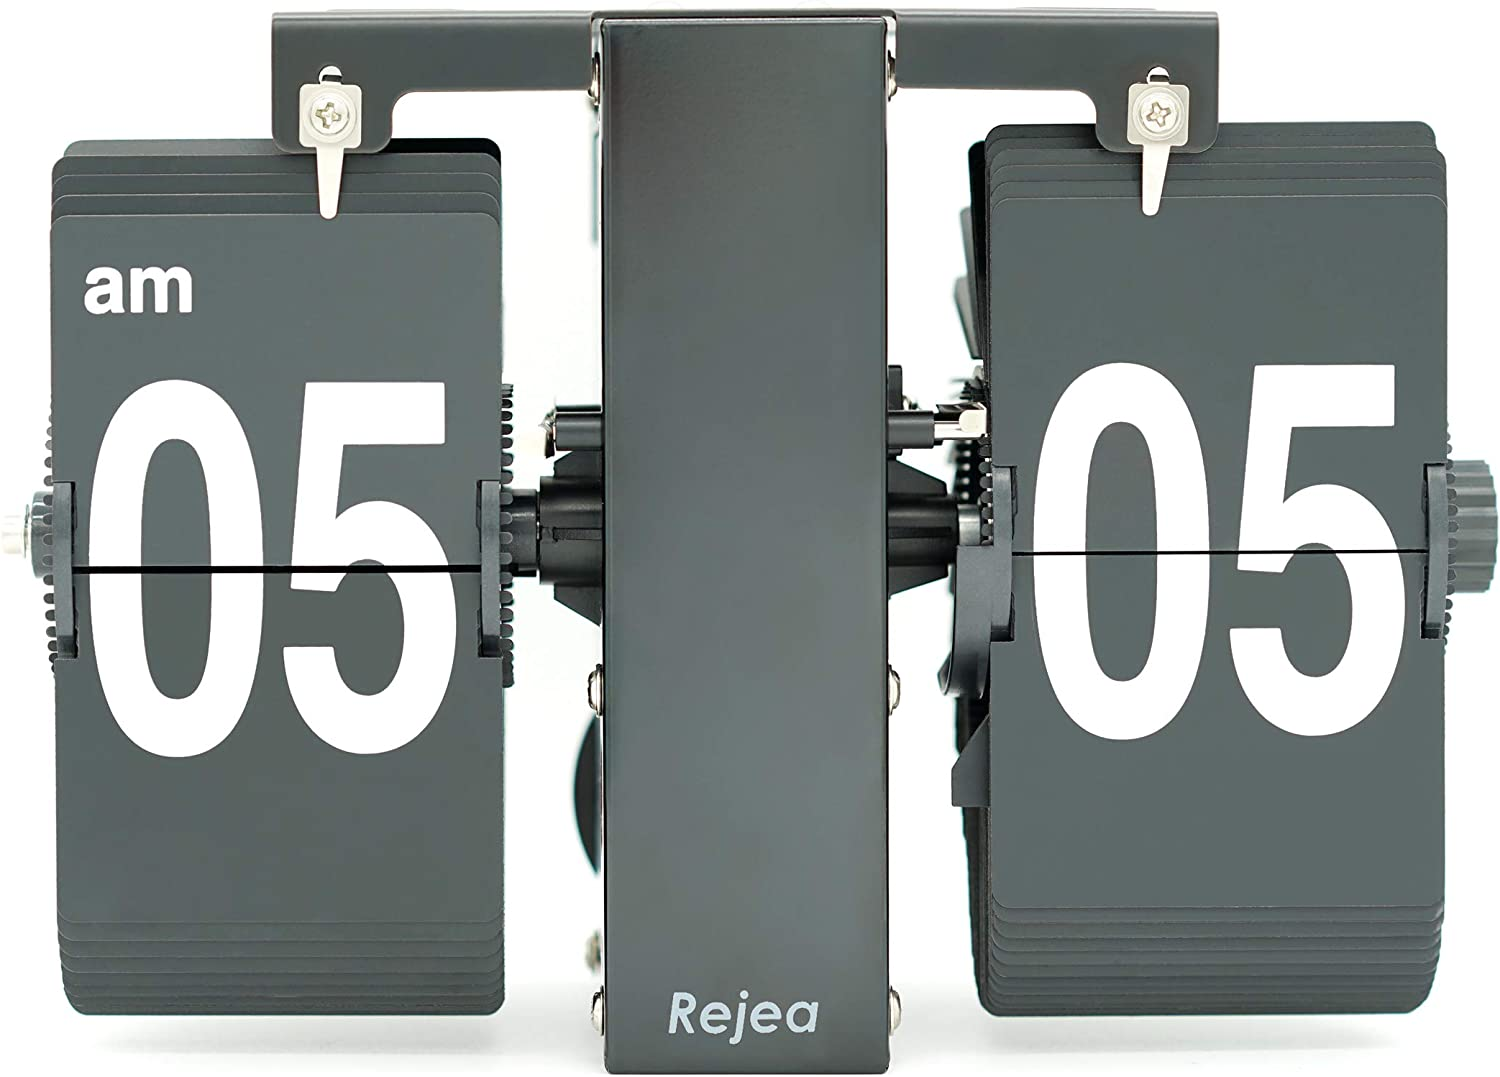 Rejea Flip Wall Clock Mechanical, 20.5x8.5x13.9cm, Digital Bold Number, Wall Mounted or Tabletop, Auto Flipping Down, Matte Finished for Office, Home (Stainless Steel Black - Medium)